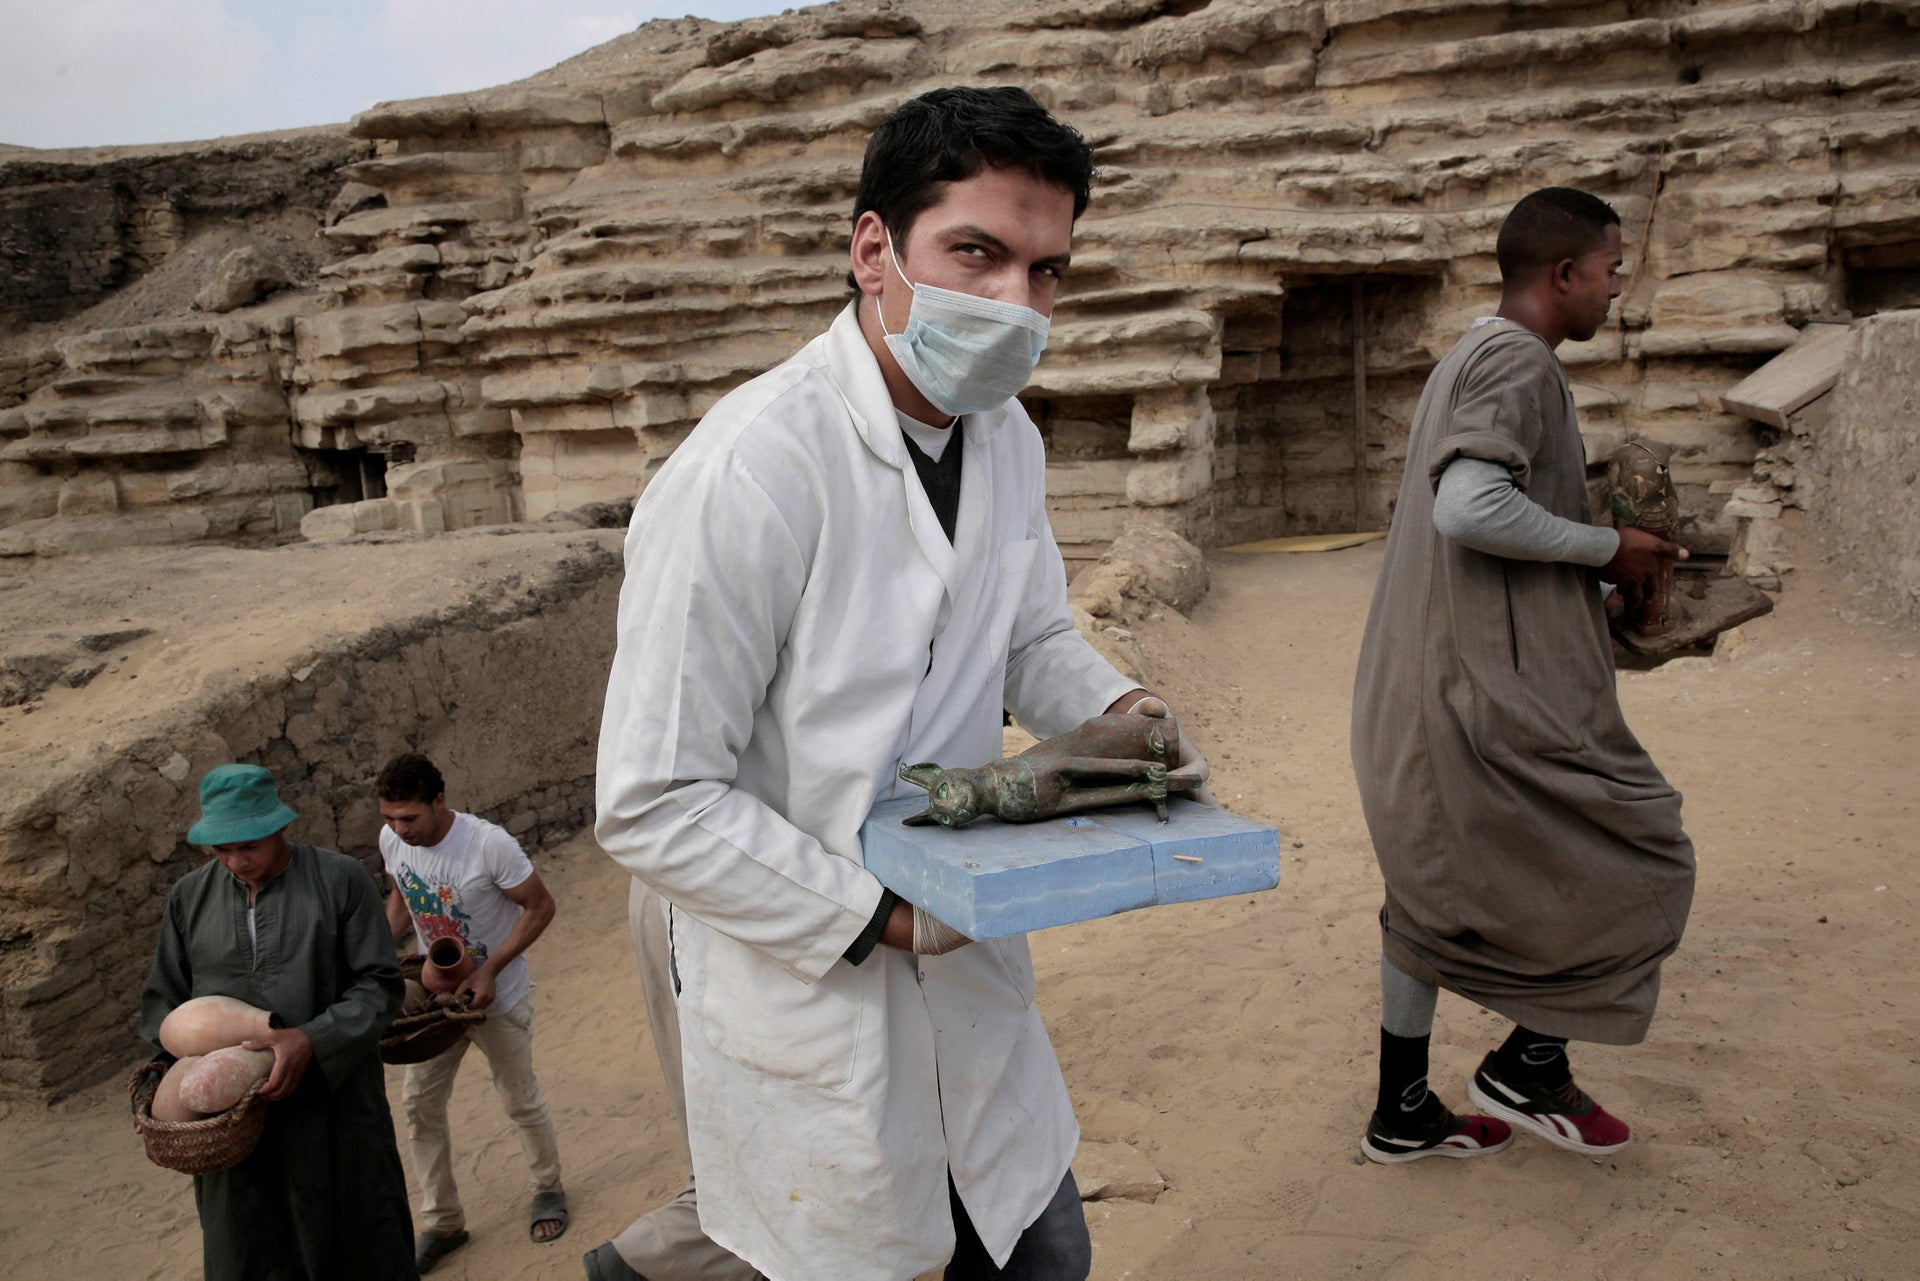 An archeologist and workers from Upper Egypt carry artifacts found in newly discovered tomb, at an ancient necropolis near Egypt's famed pyramids in Saqqara, Giza, Egypt, Saturday, Nov. 10, 2018. A top Egyptian antiquities official says local archaeologists have discovered seven Pharaonic Age tombs near the capital Cairo containing dozens of cat mummies along with wooden statues depicting other animals.